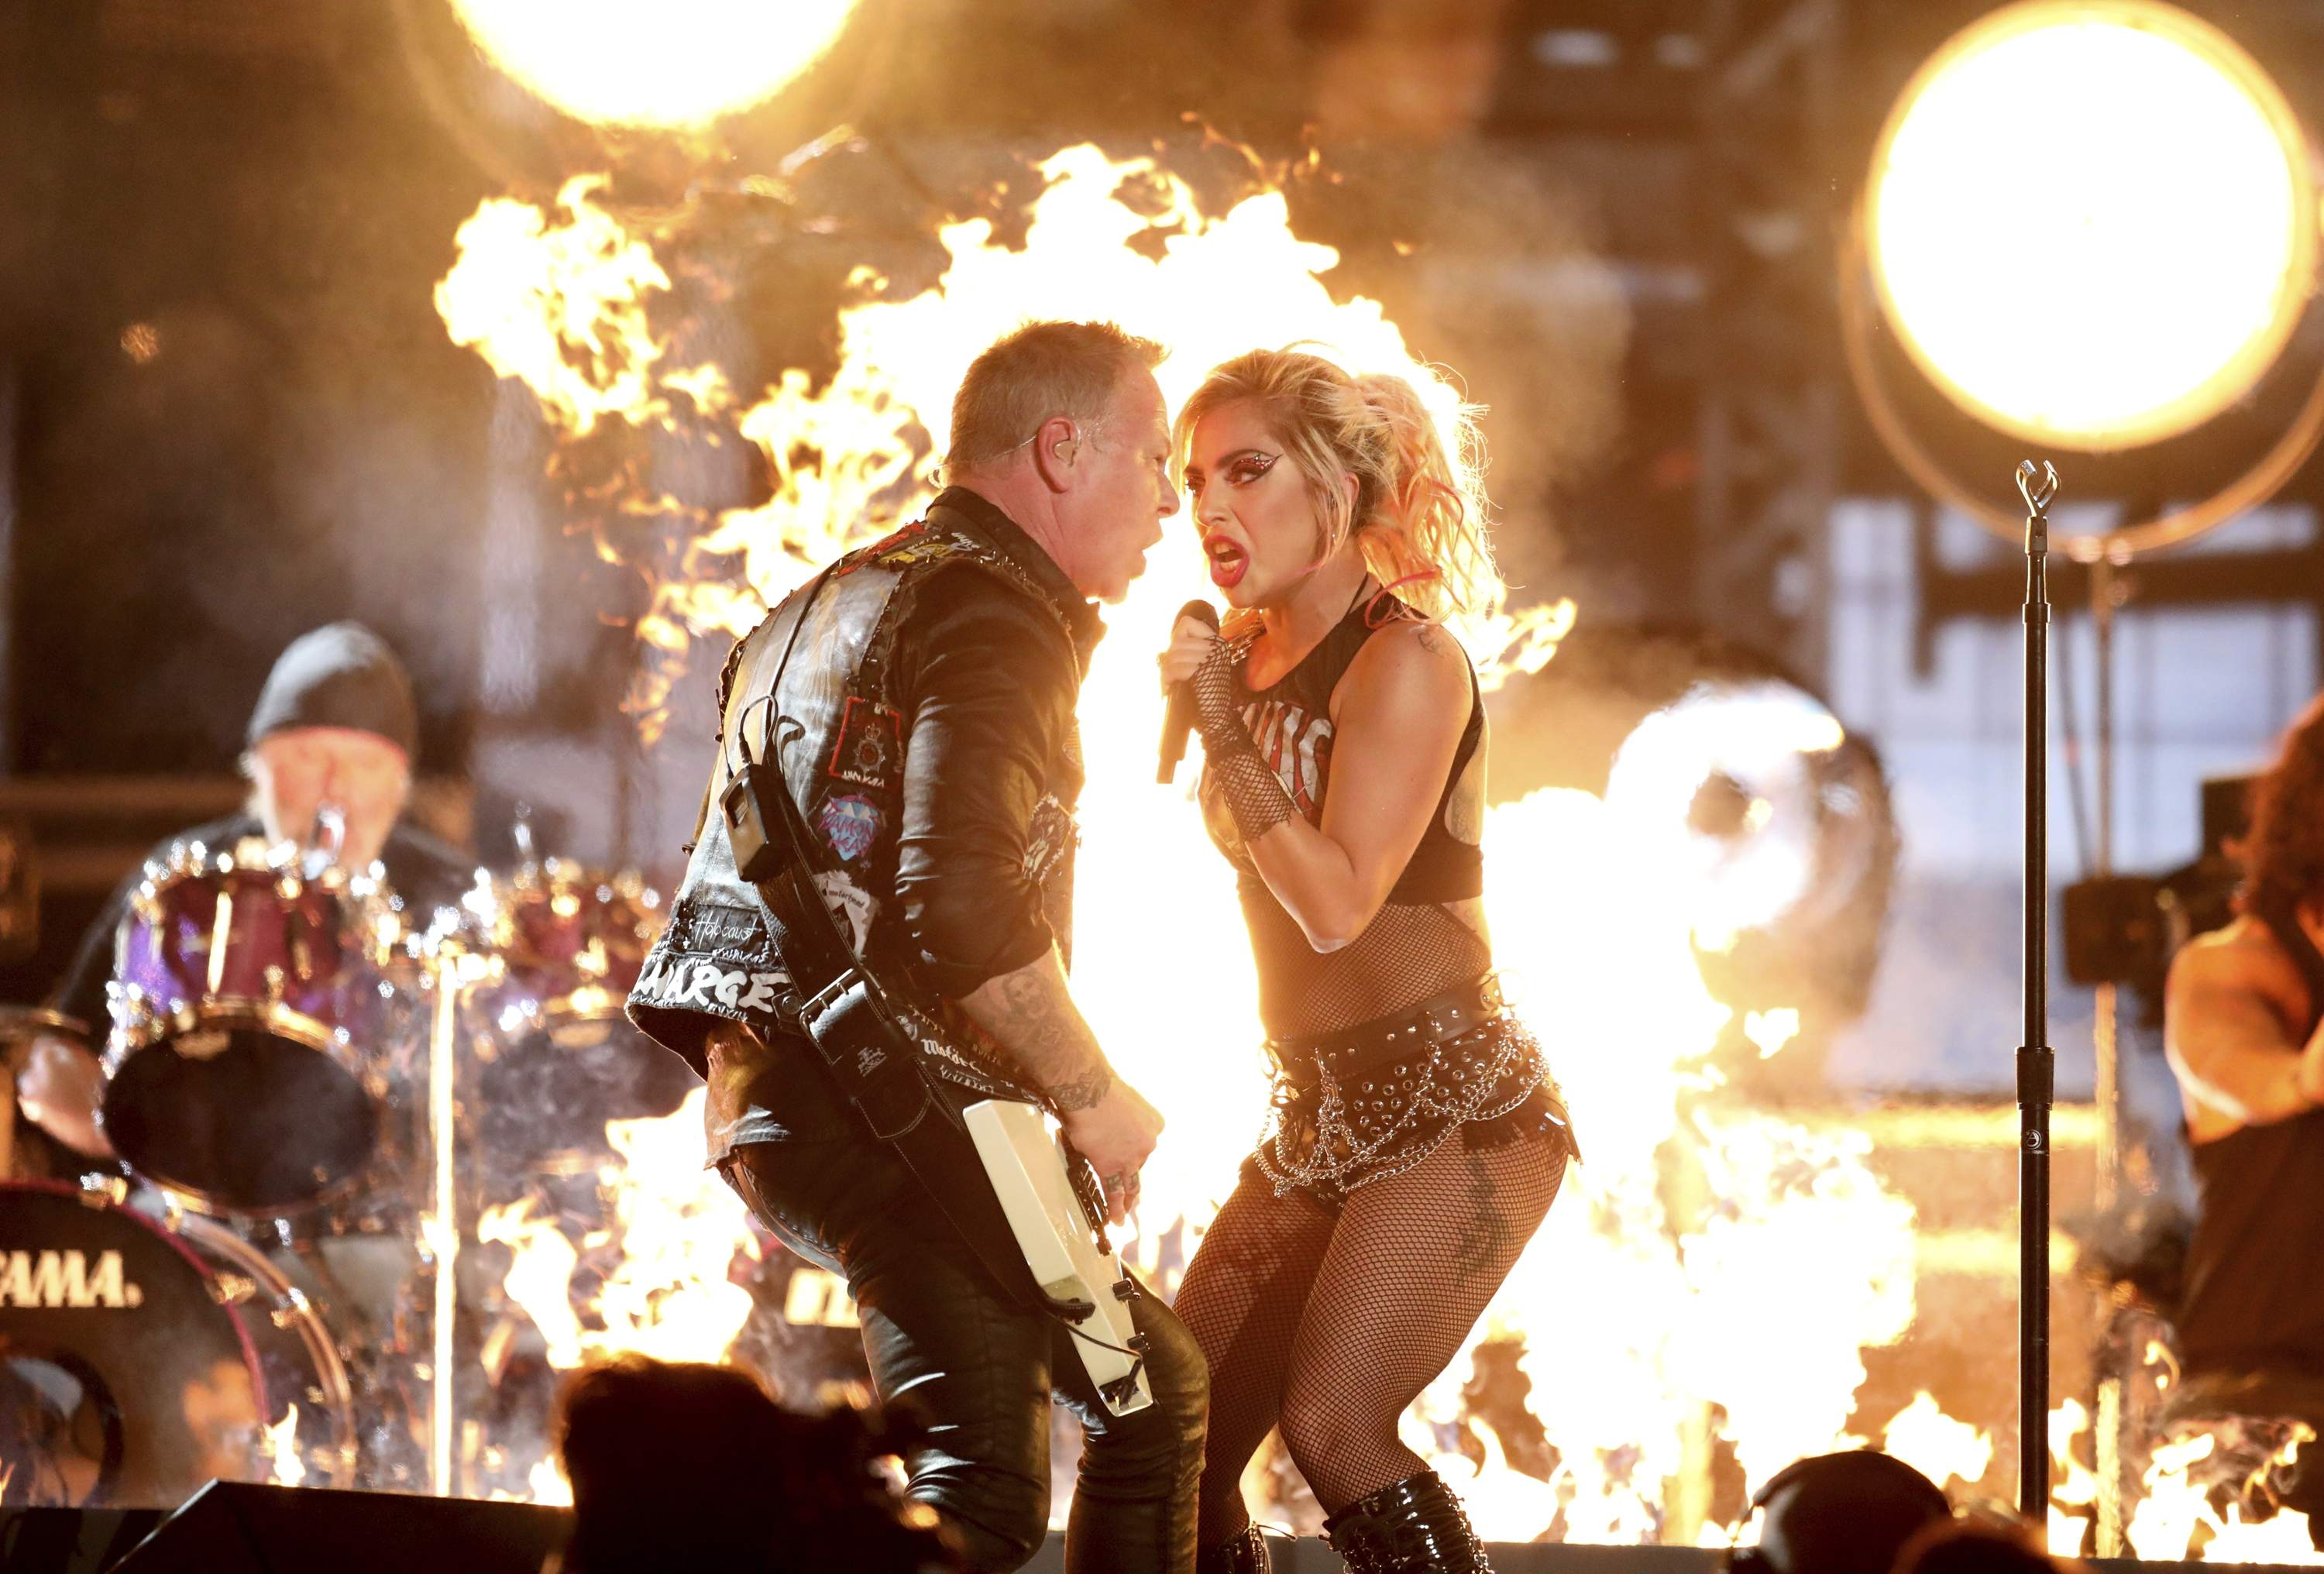 Lady Gaga, right, and James Hetfield of 'Metallica' perform 'Moth Into Flame' at the 59th annual Grammy Awards on Sunday, Feb. 12, 2017, in Los Angeles. THE ASSOCIATED PRESS